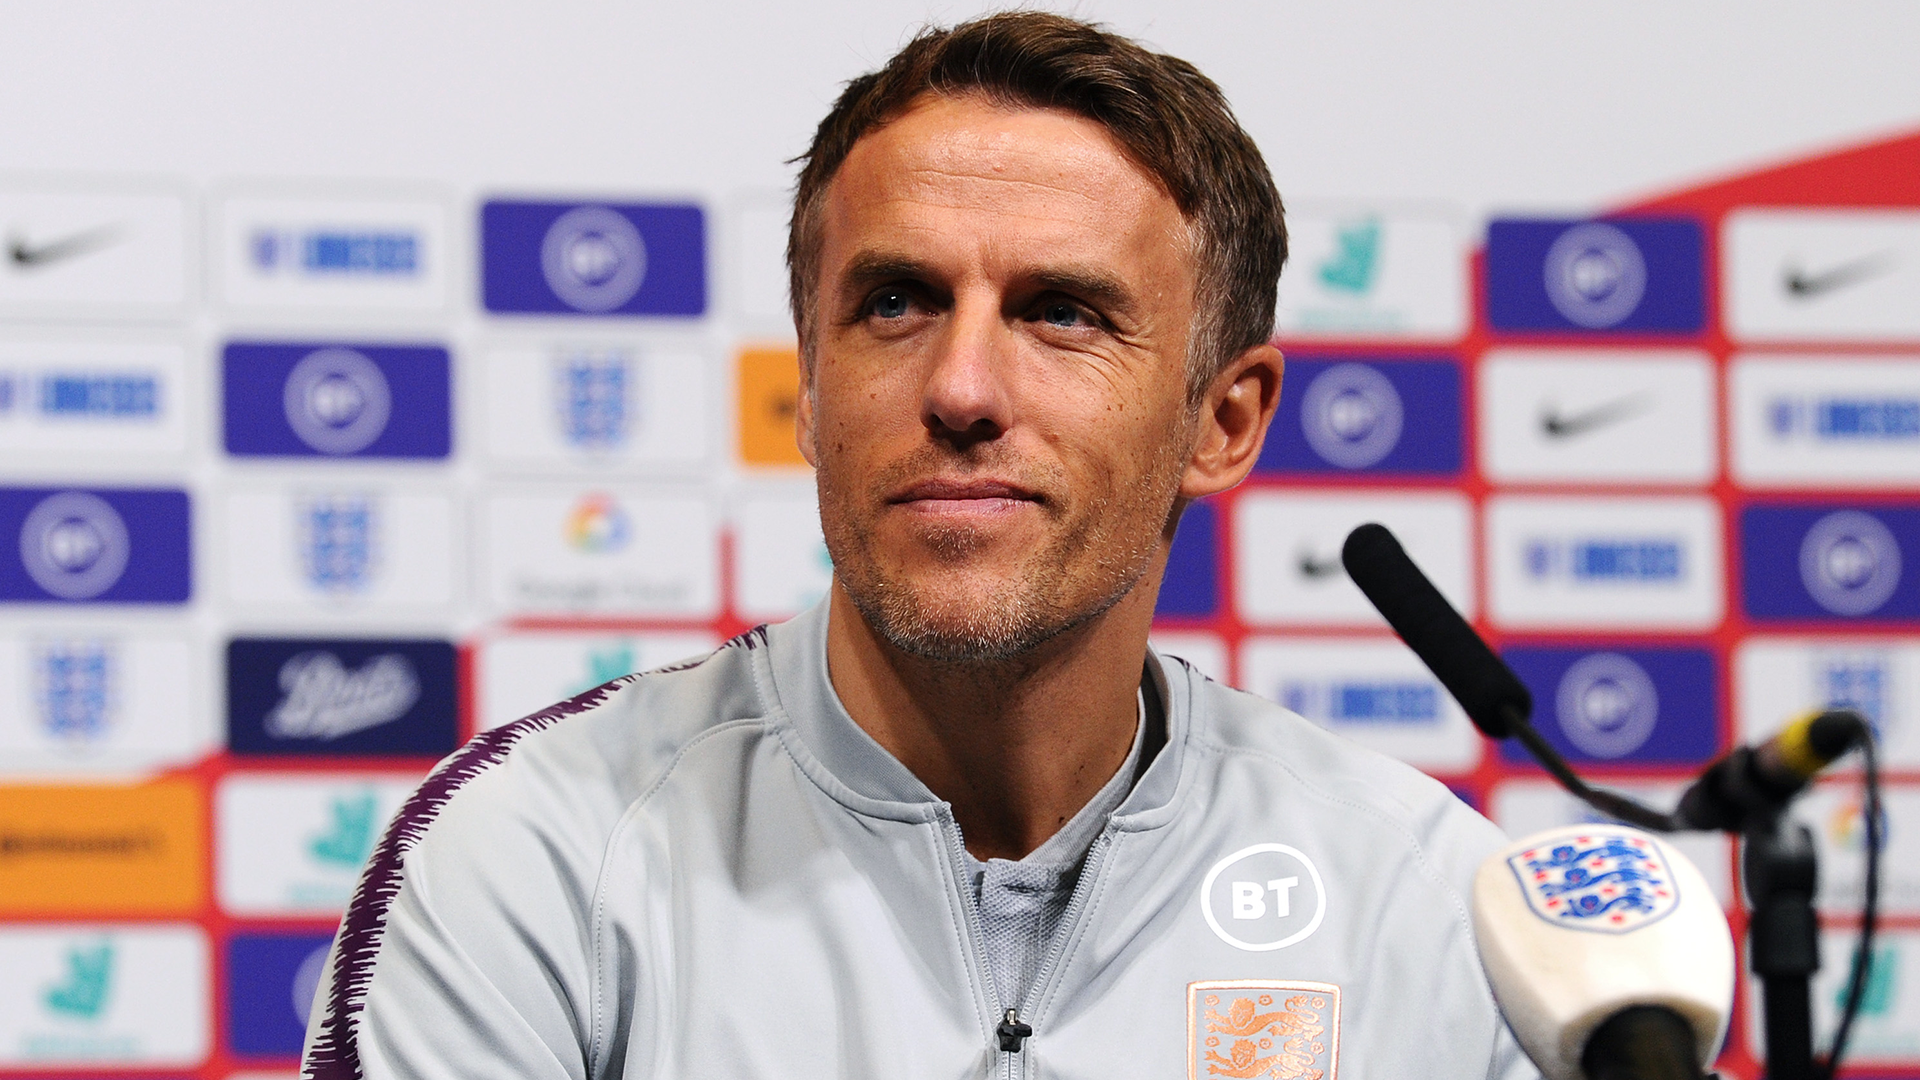 Inter Miami appoint Phil Neville as new coach after England departure